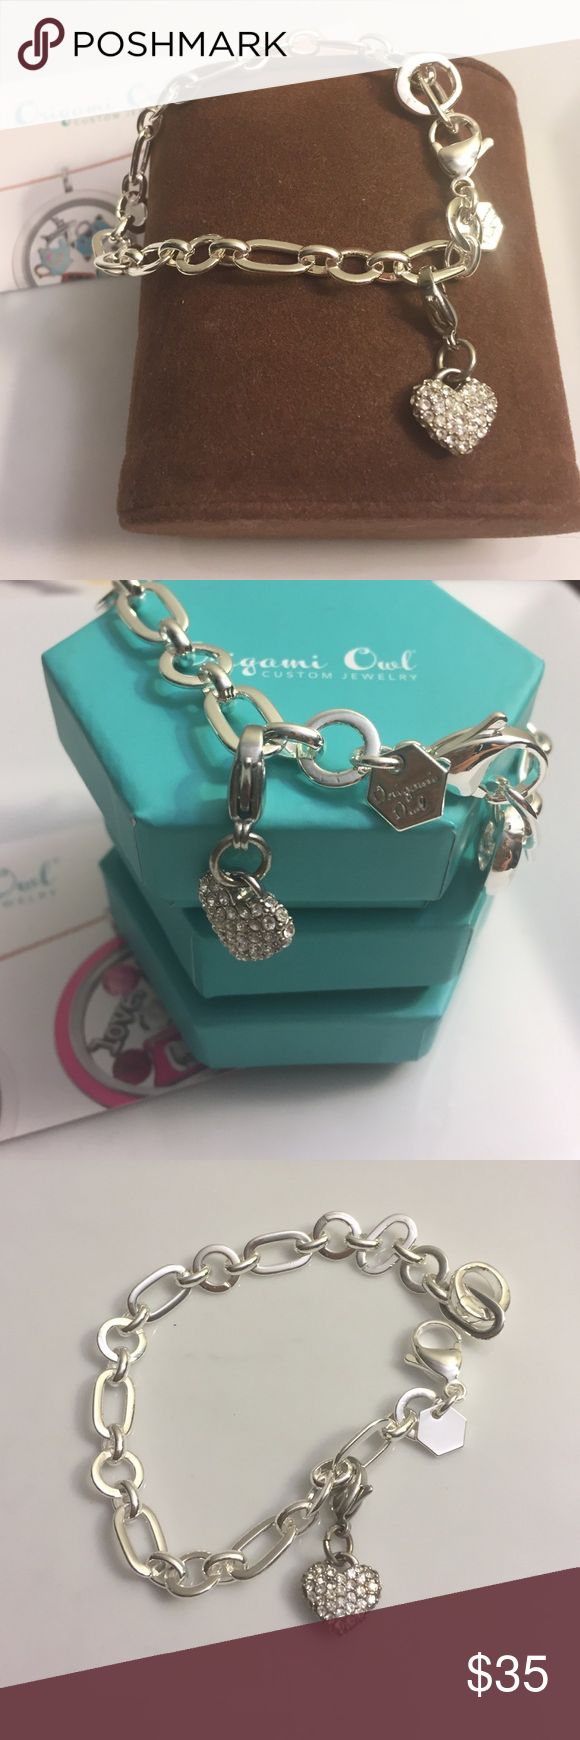 """Origami Owl Bracelet Set Set includes: a 7""""inches bracelet silver tone and a silver tone heart with crystals silver tone. The bracelet also cones with a clasp for you to add small lockets. Original and brand new pieces. Origami Owl Jewelry Bracelets"""